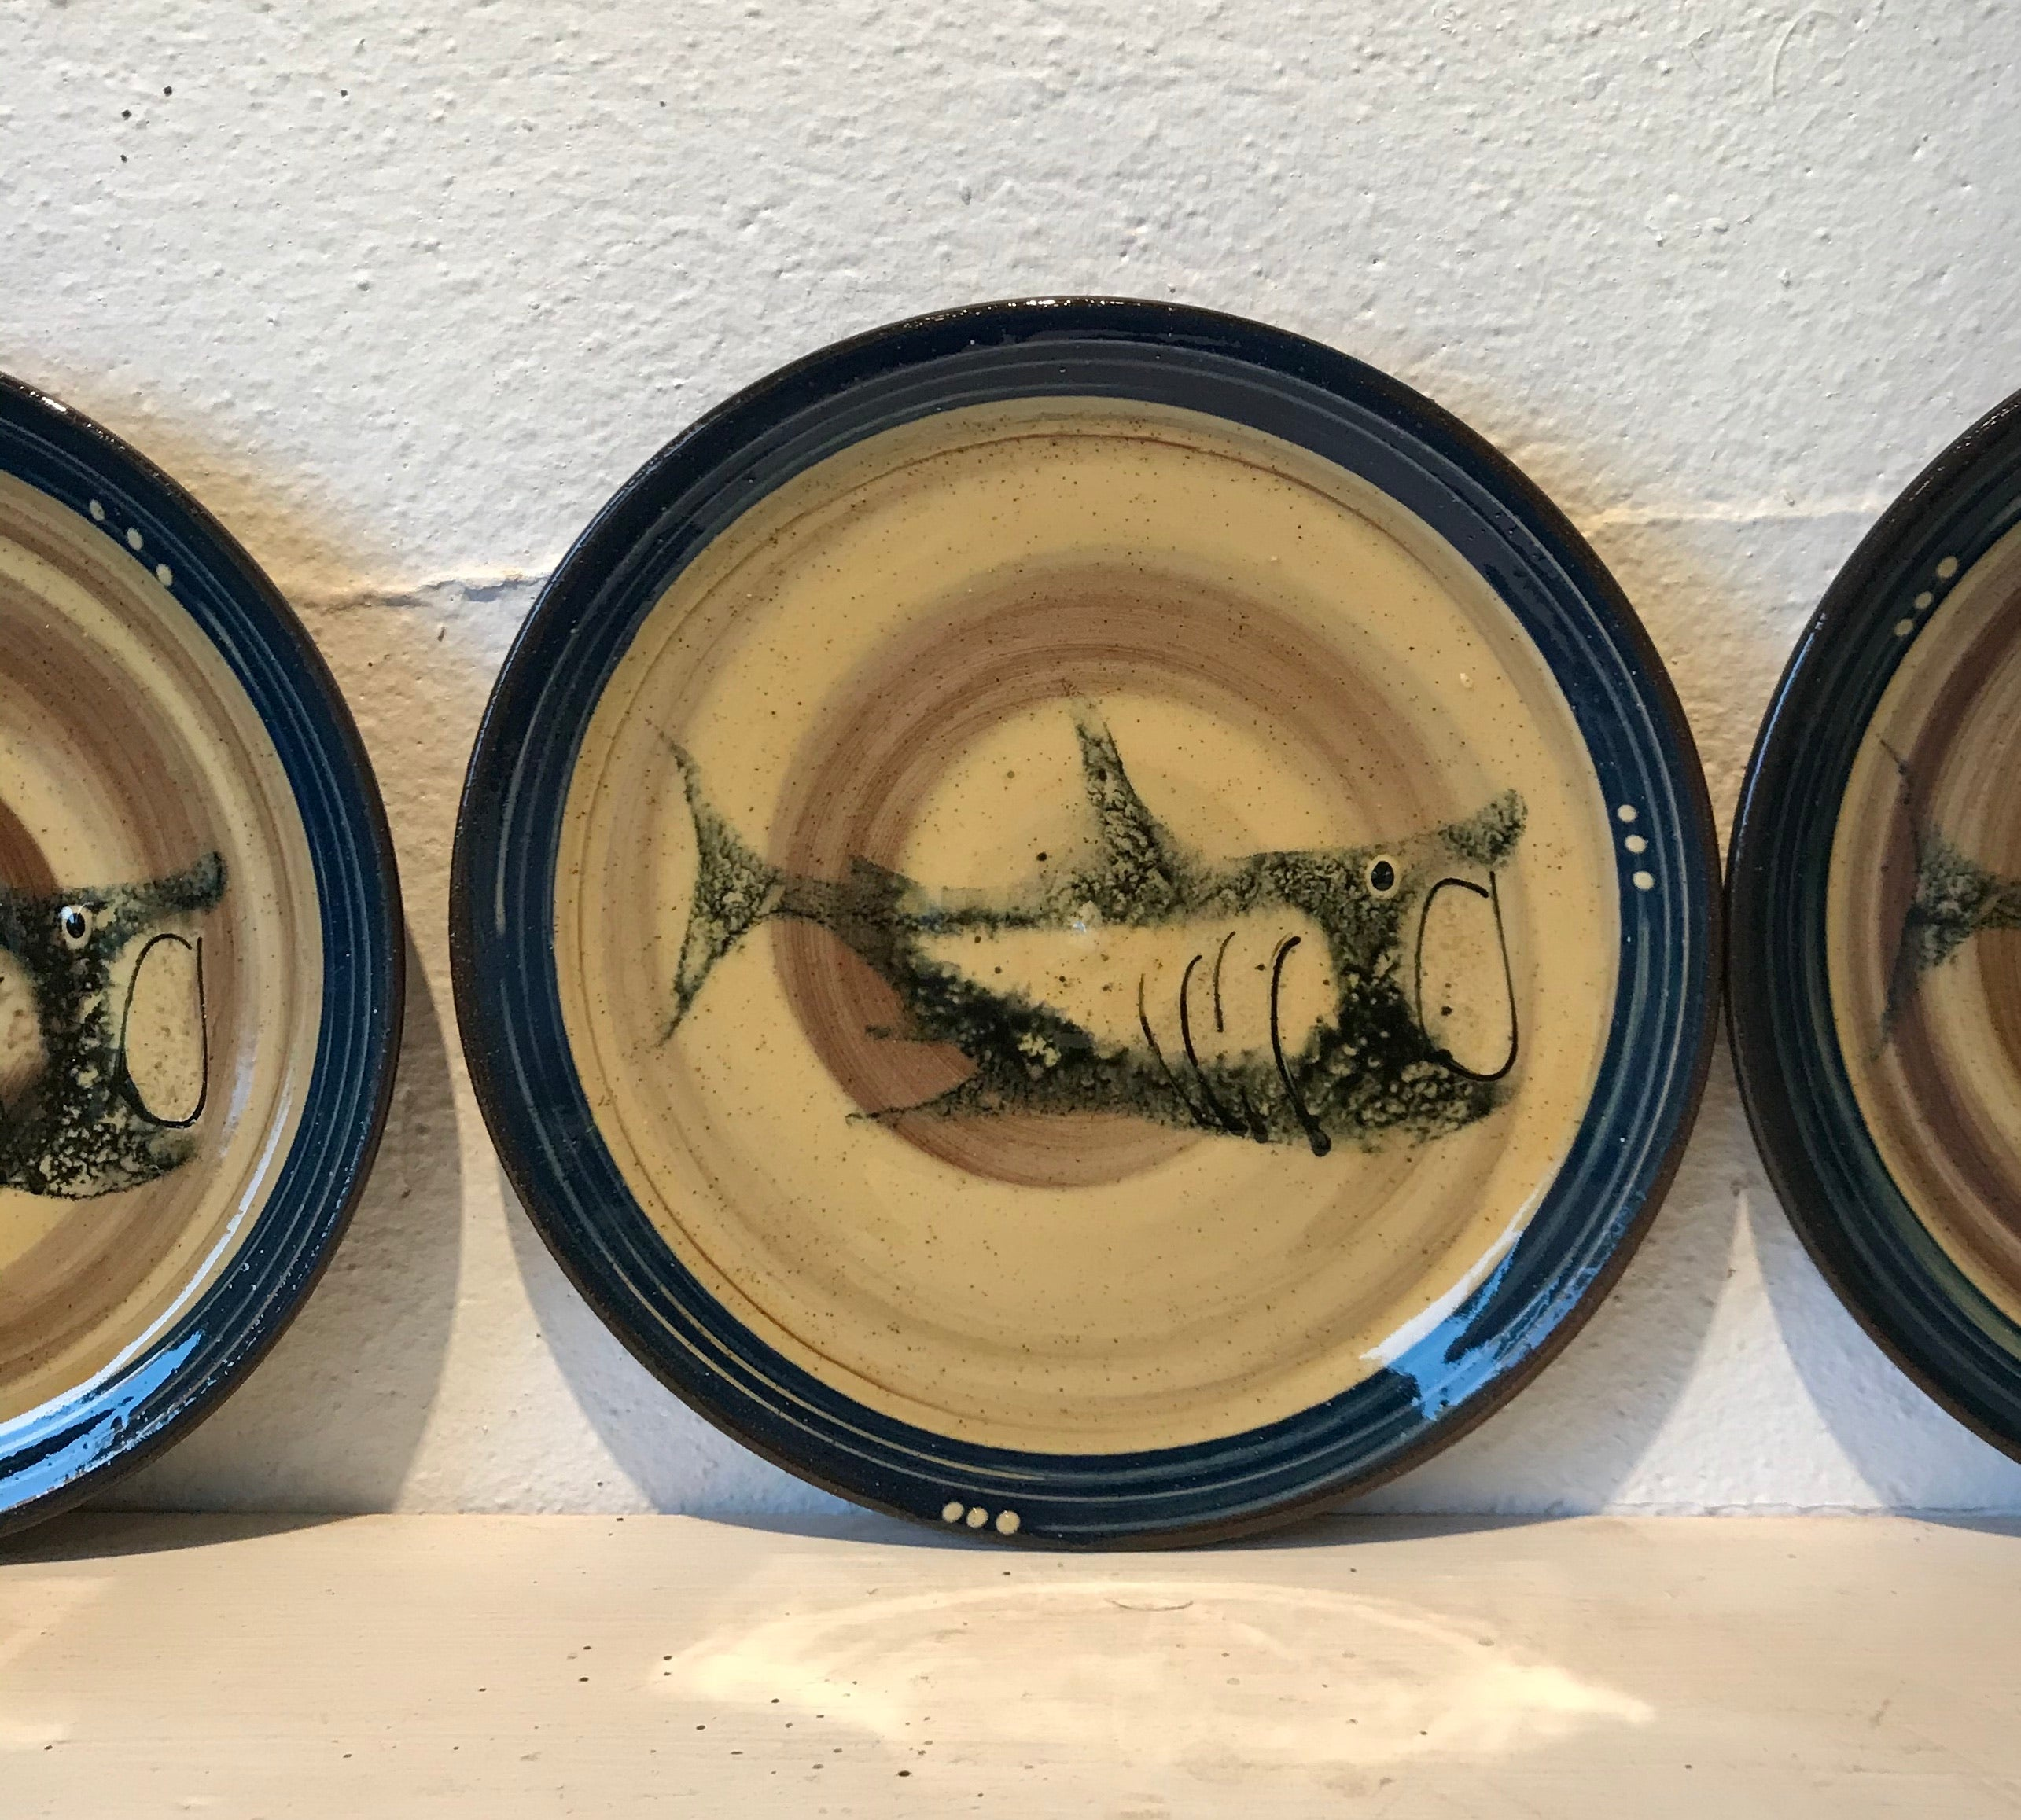 Basking Shark Plate